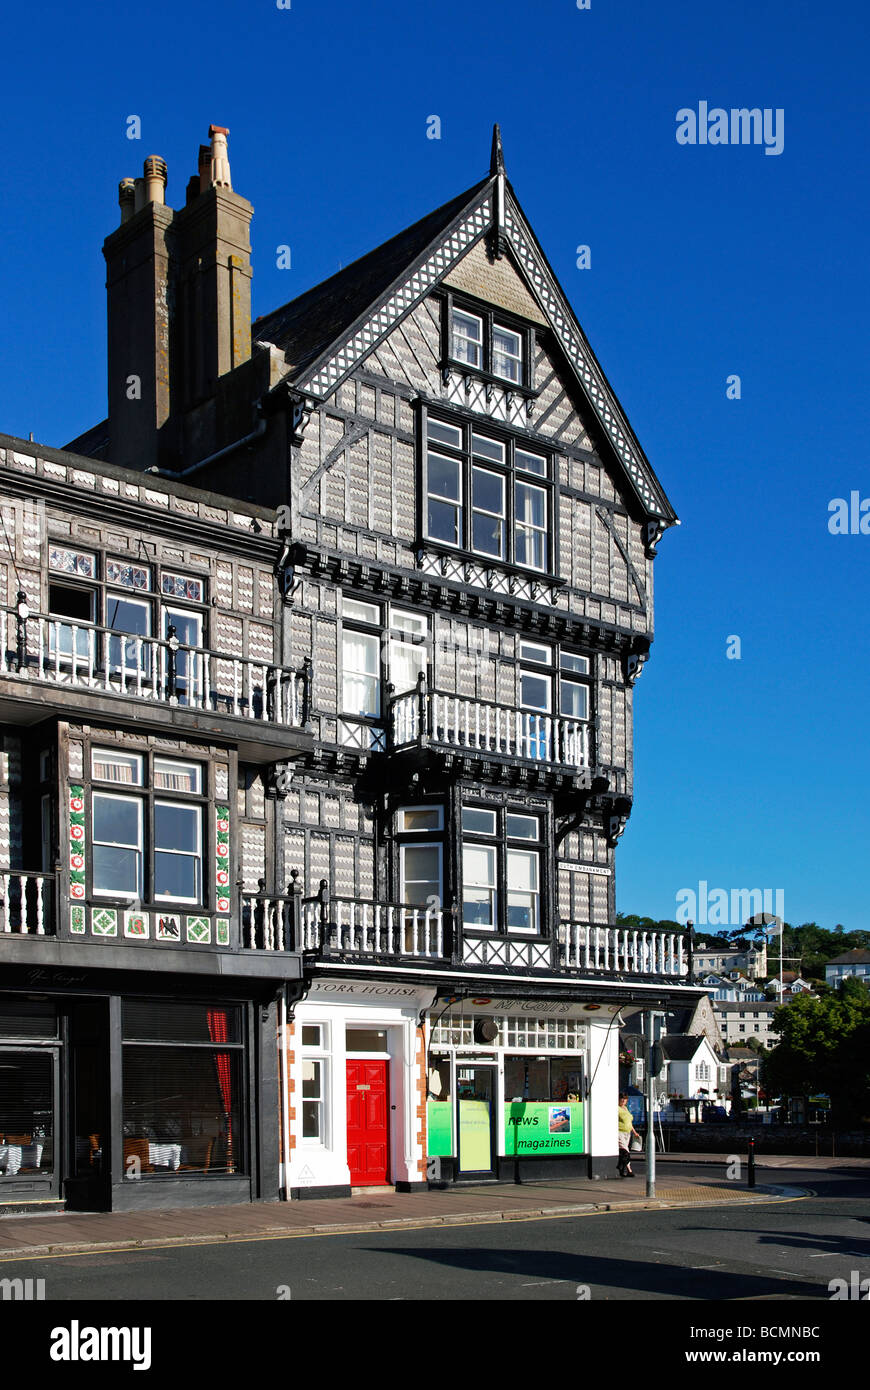 L'architecture tudor, Dartmouth, Devon, UK Photo Stock